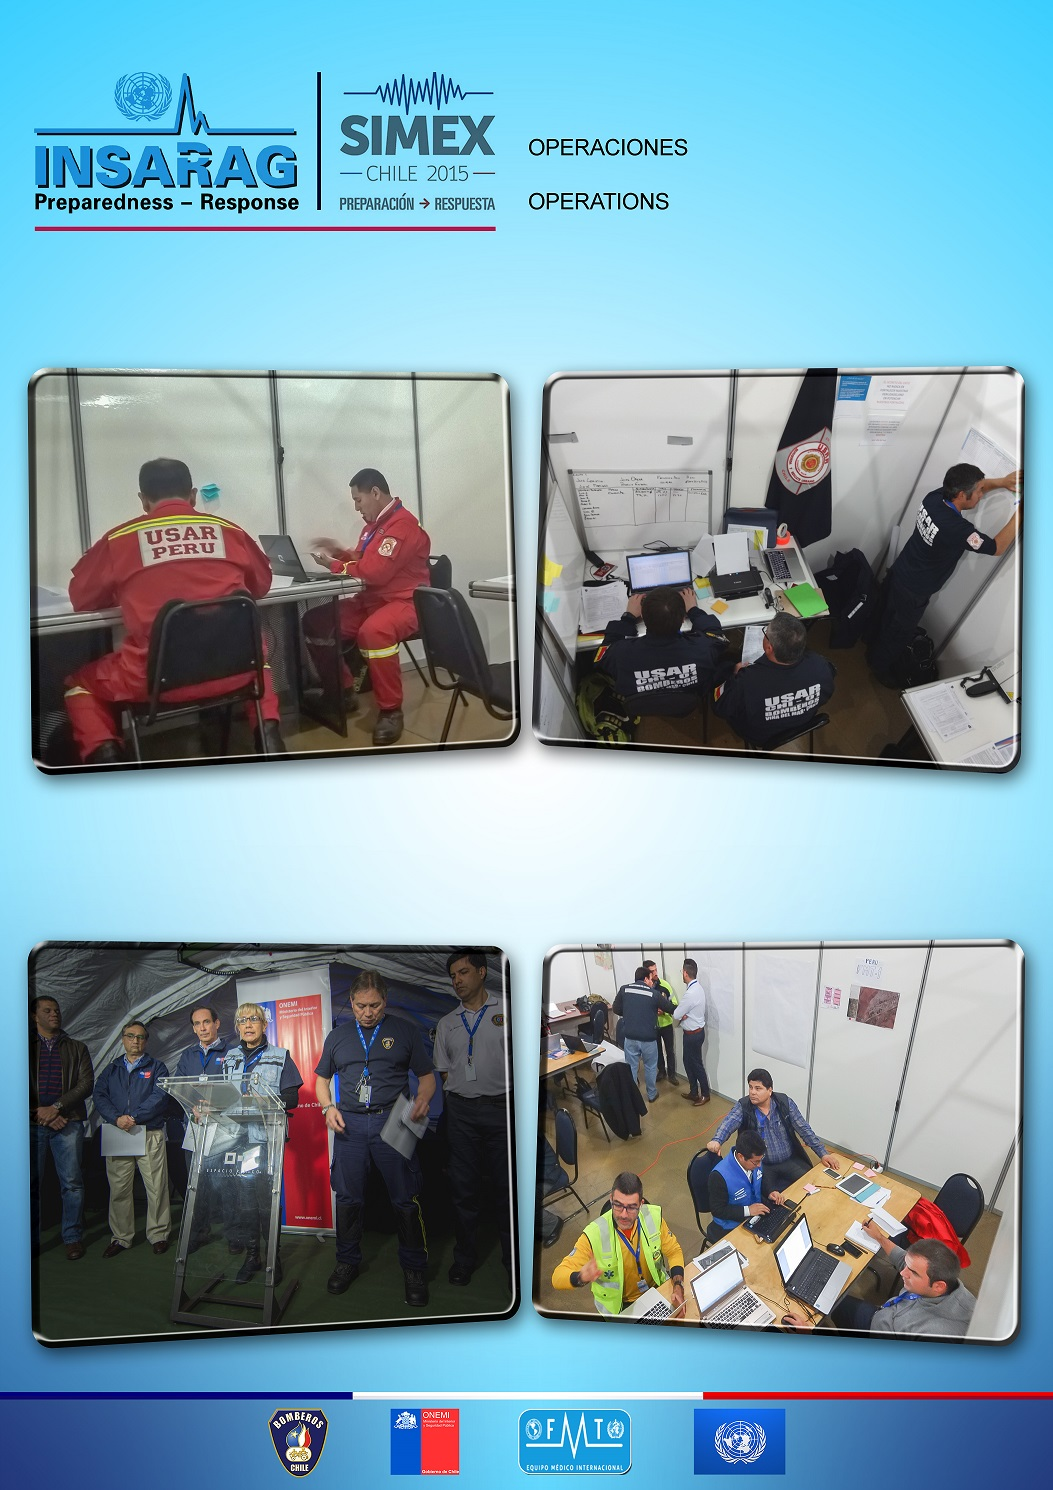 SIMEX_Chile_2015_08_operations